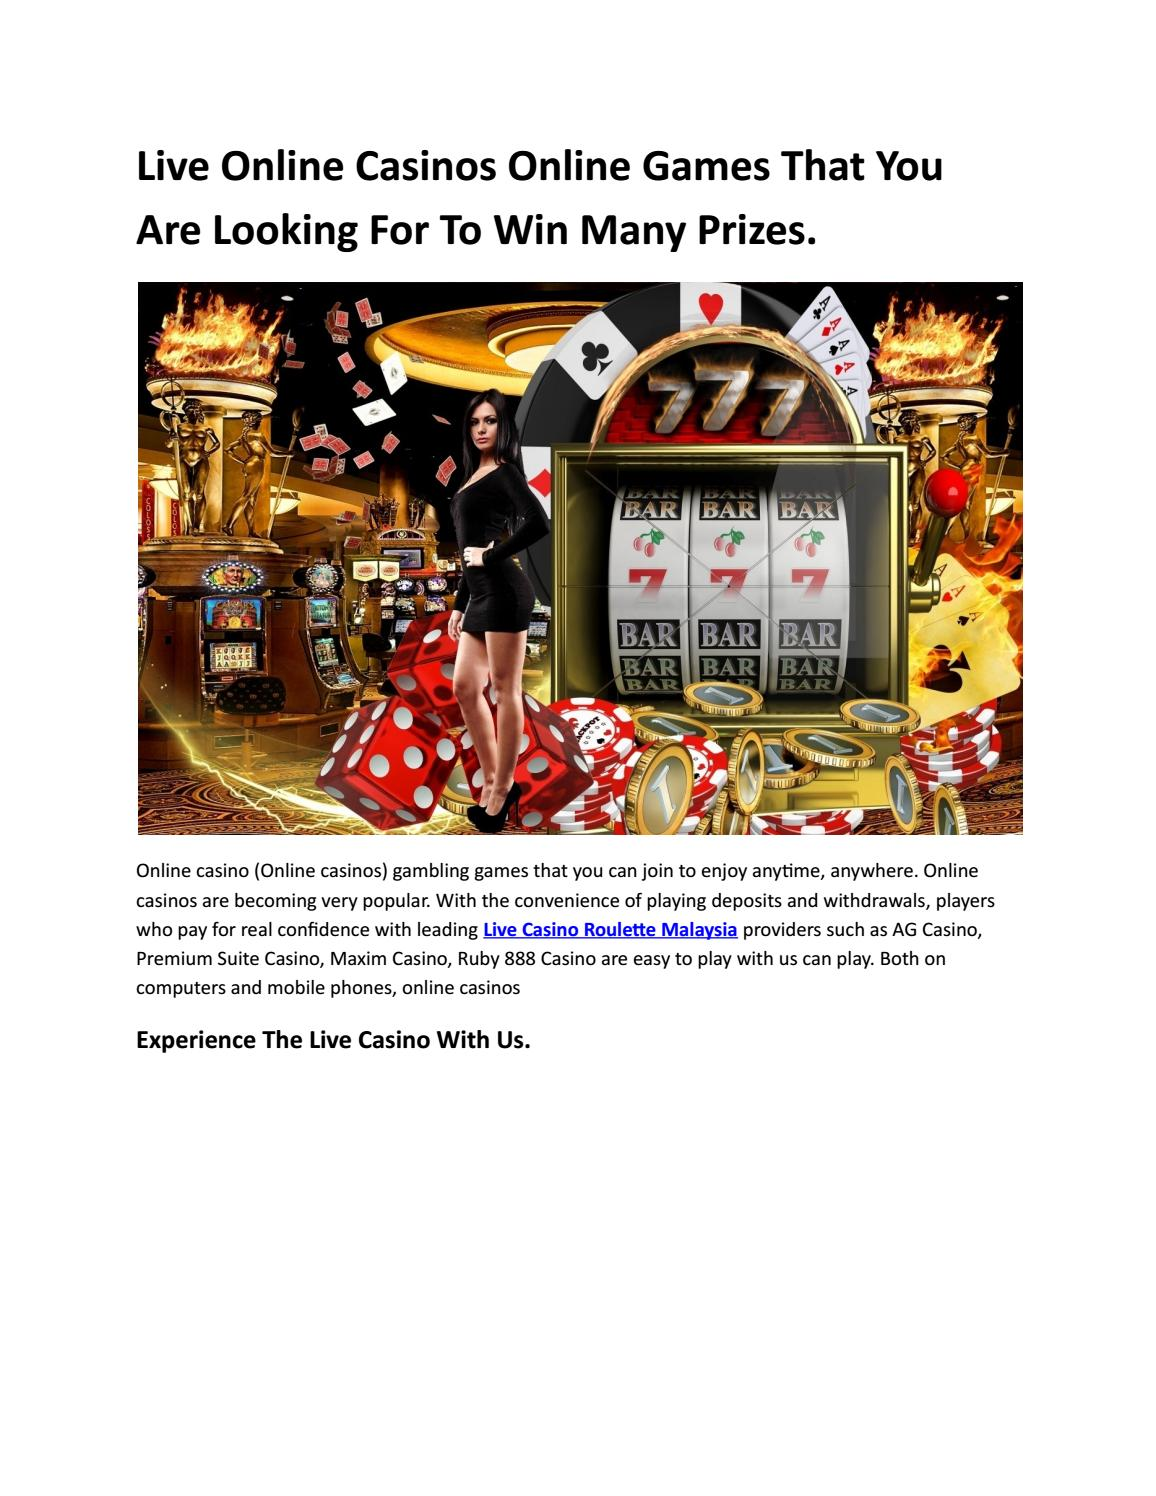 Live Online Casinos Online Games That You Are Looking For To Win Many Prizes By Live Casino 2020 Issuu